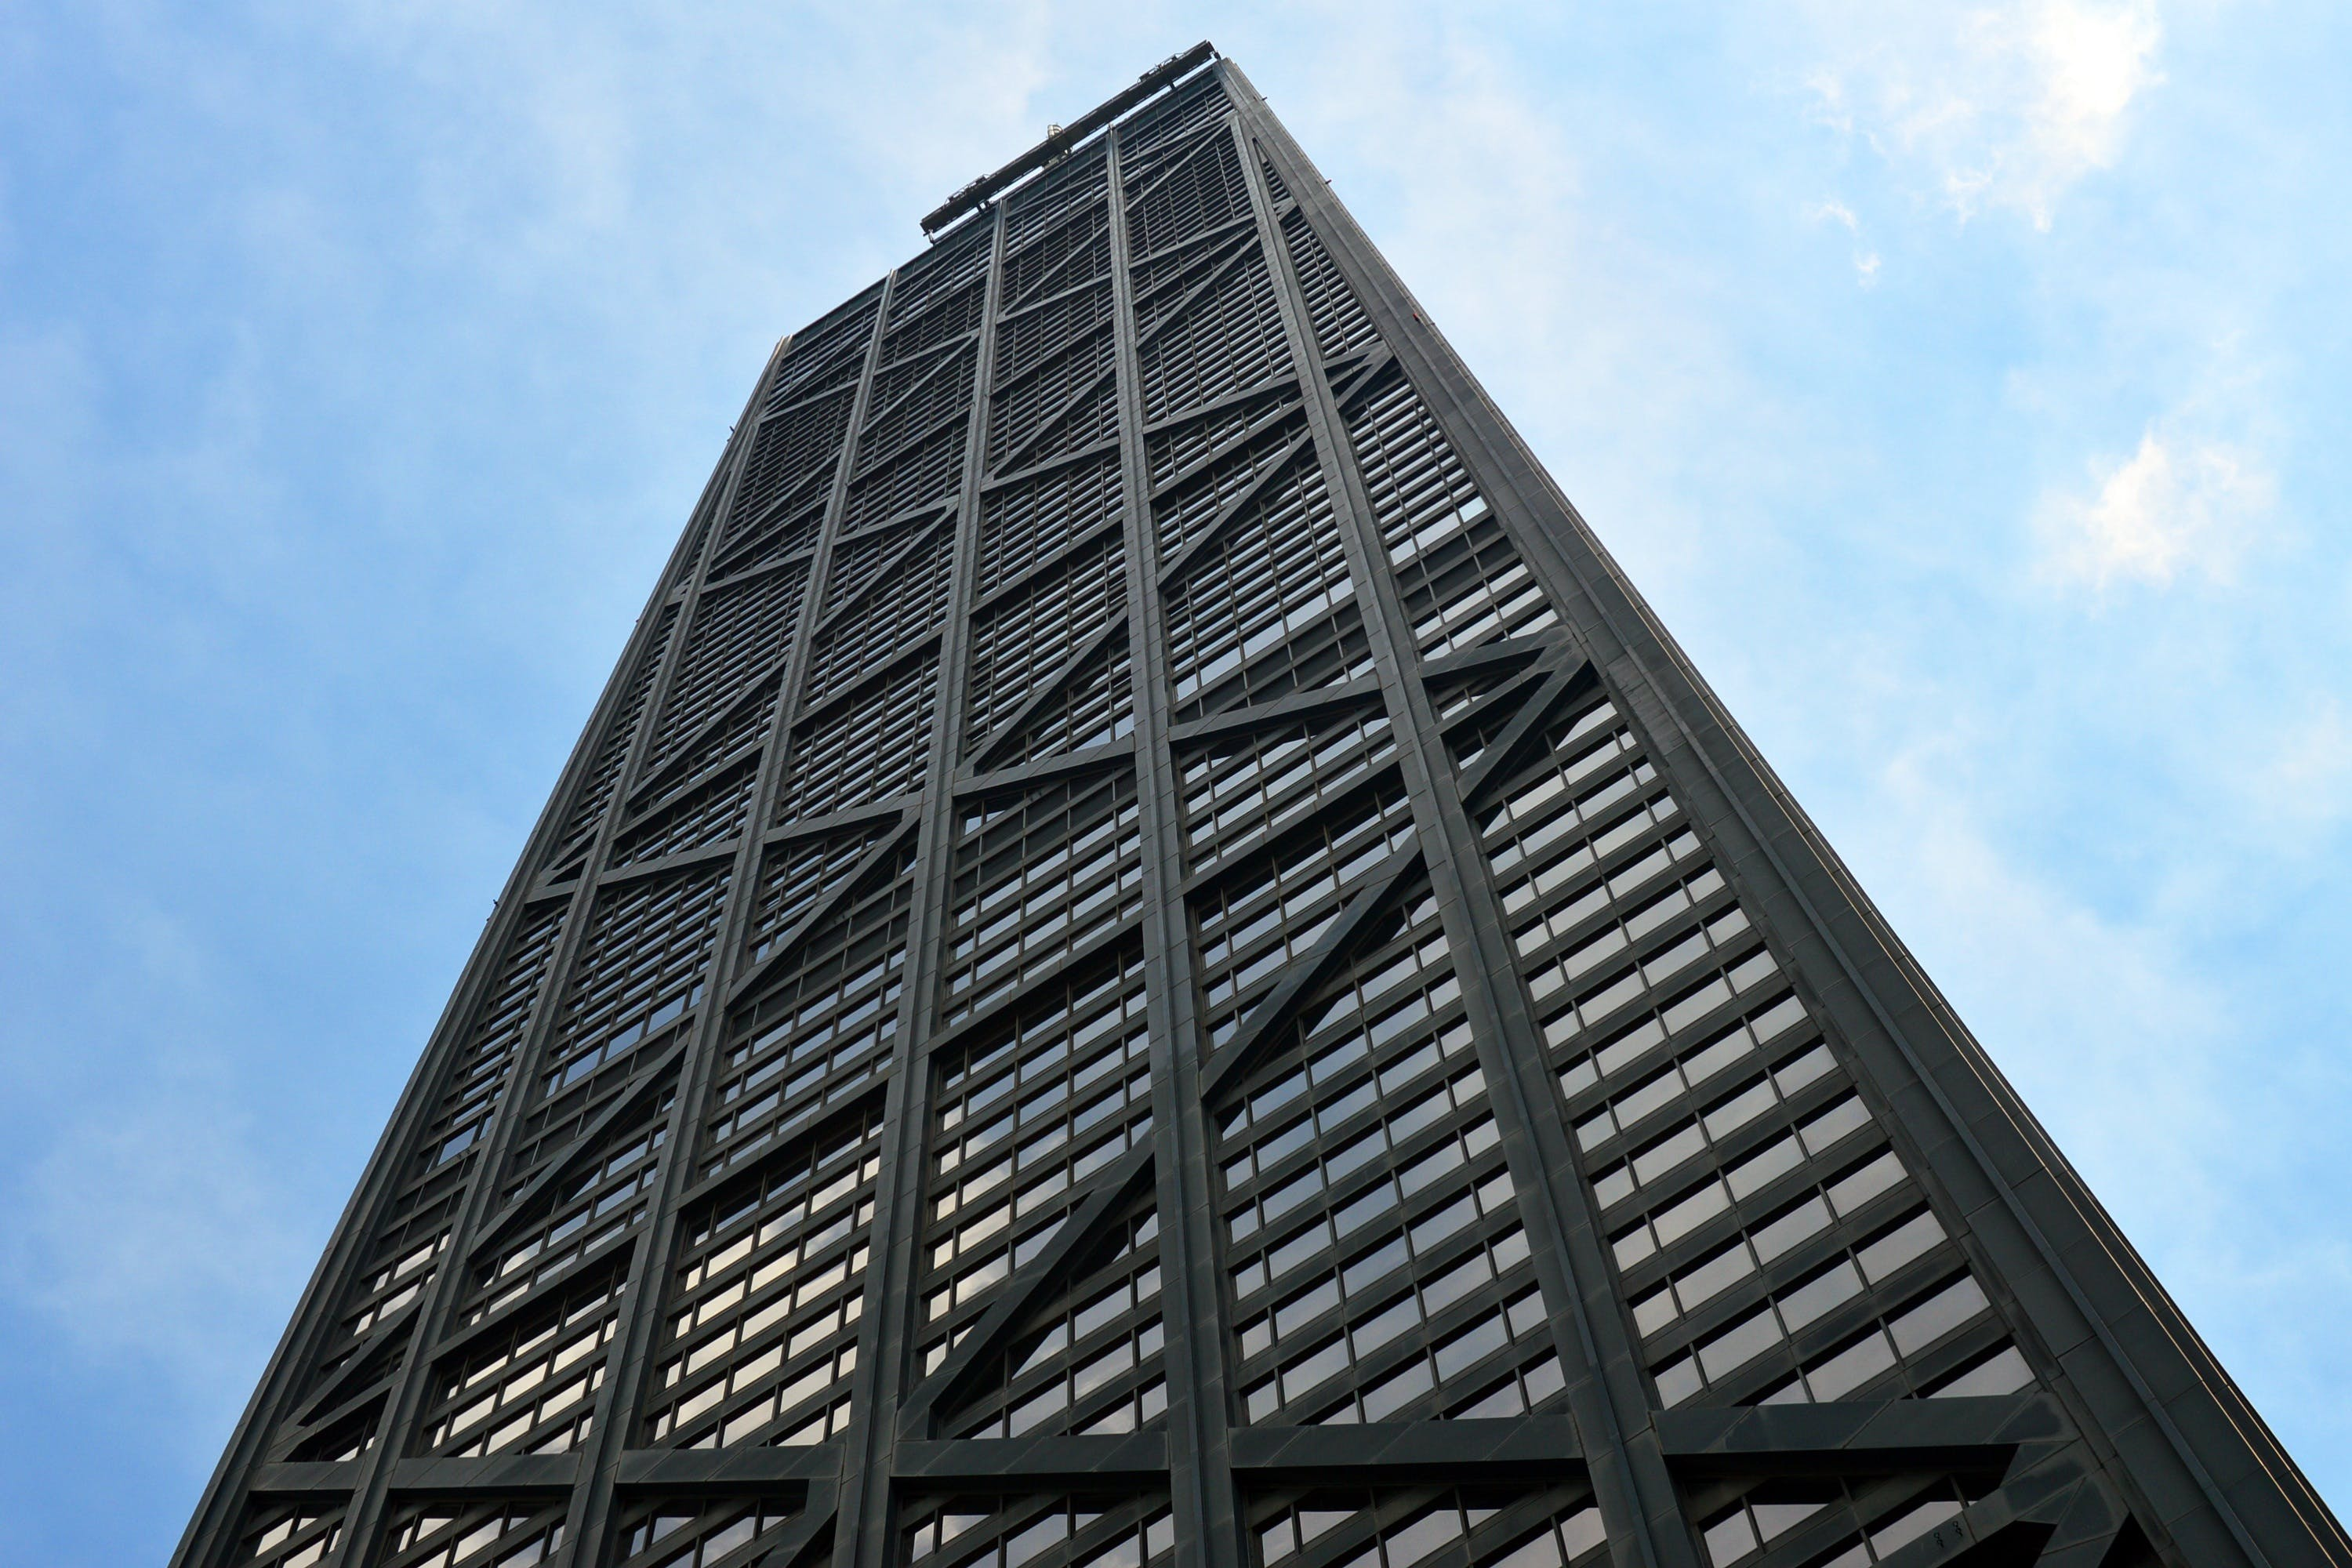 Low Angle Photography of Black High Rise Building